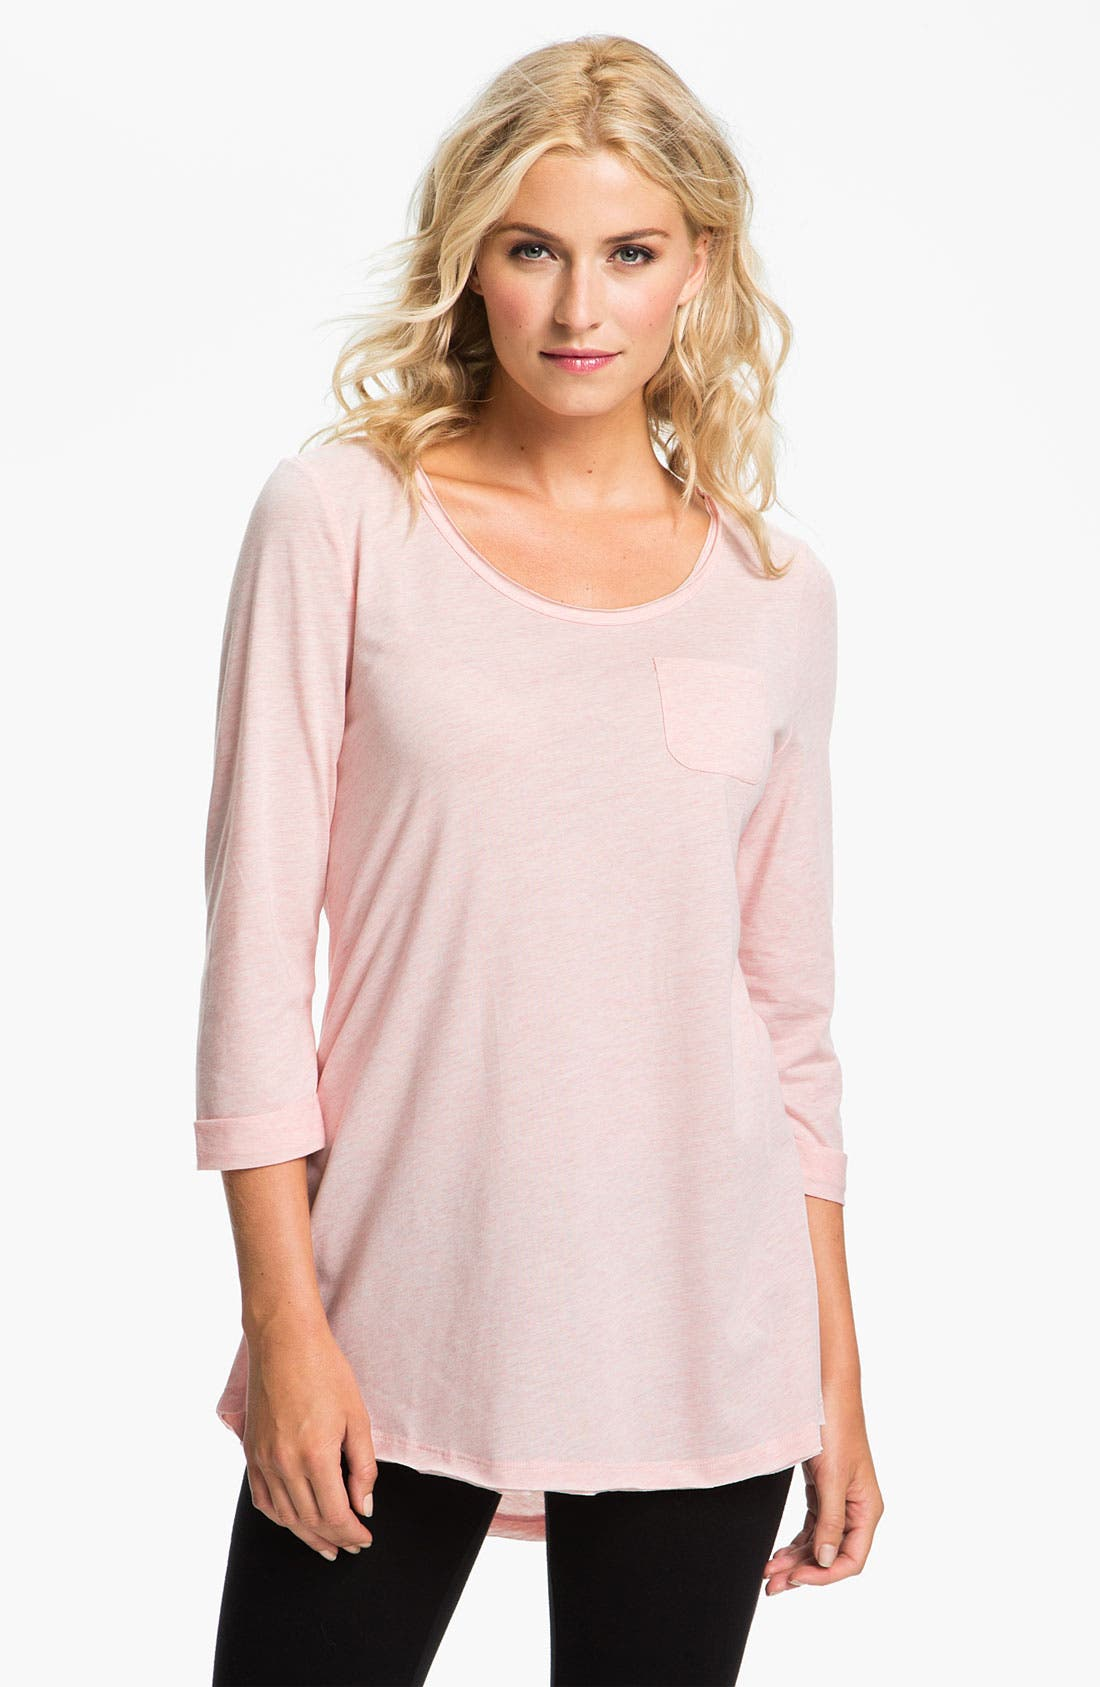 Main Image - Daniel Buchler Heather Knit Lounge Top